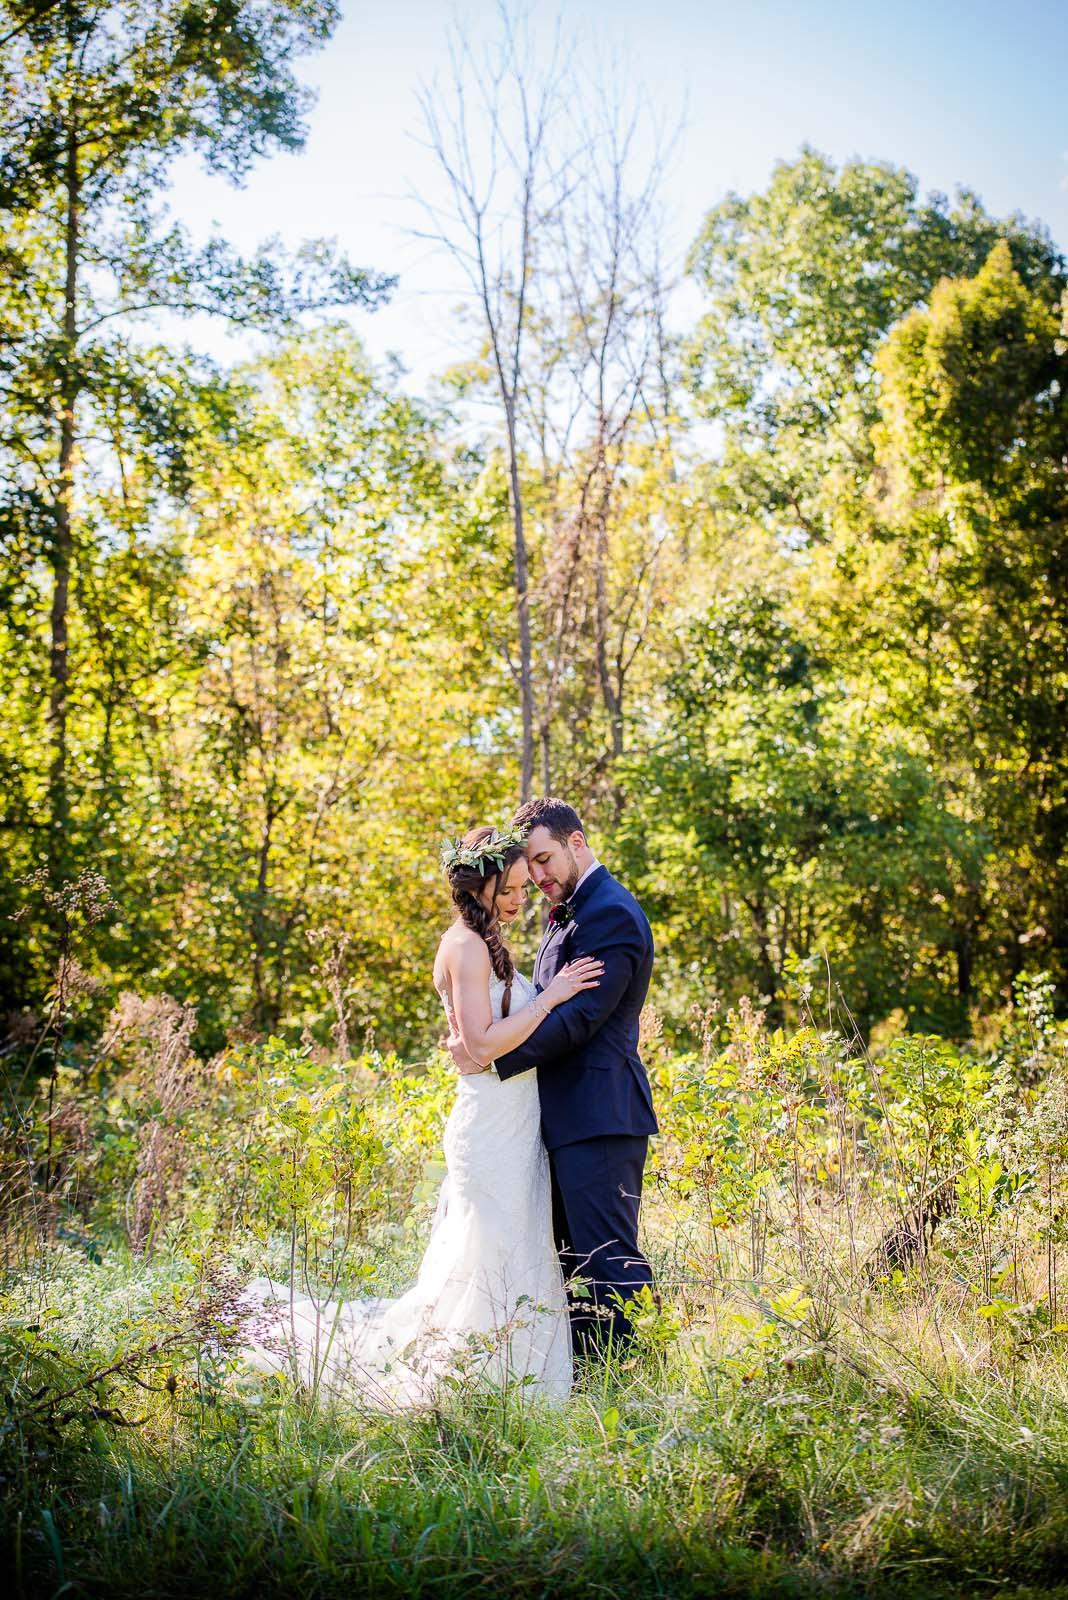 Eric_and_Christy_Photography_Blog_Stephanie_Nick_Wedding-51